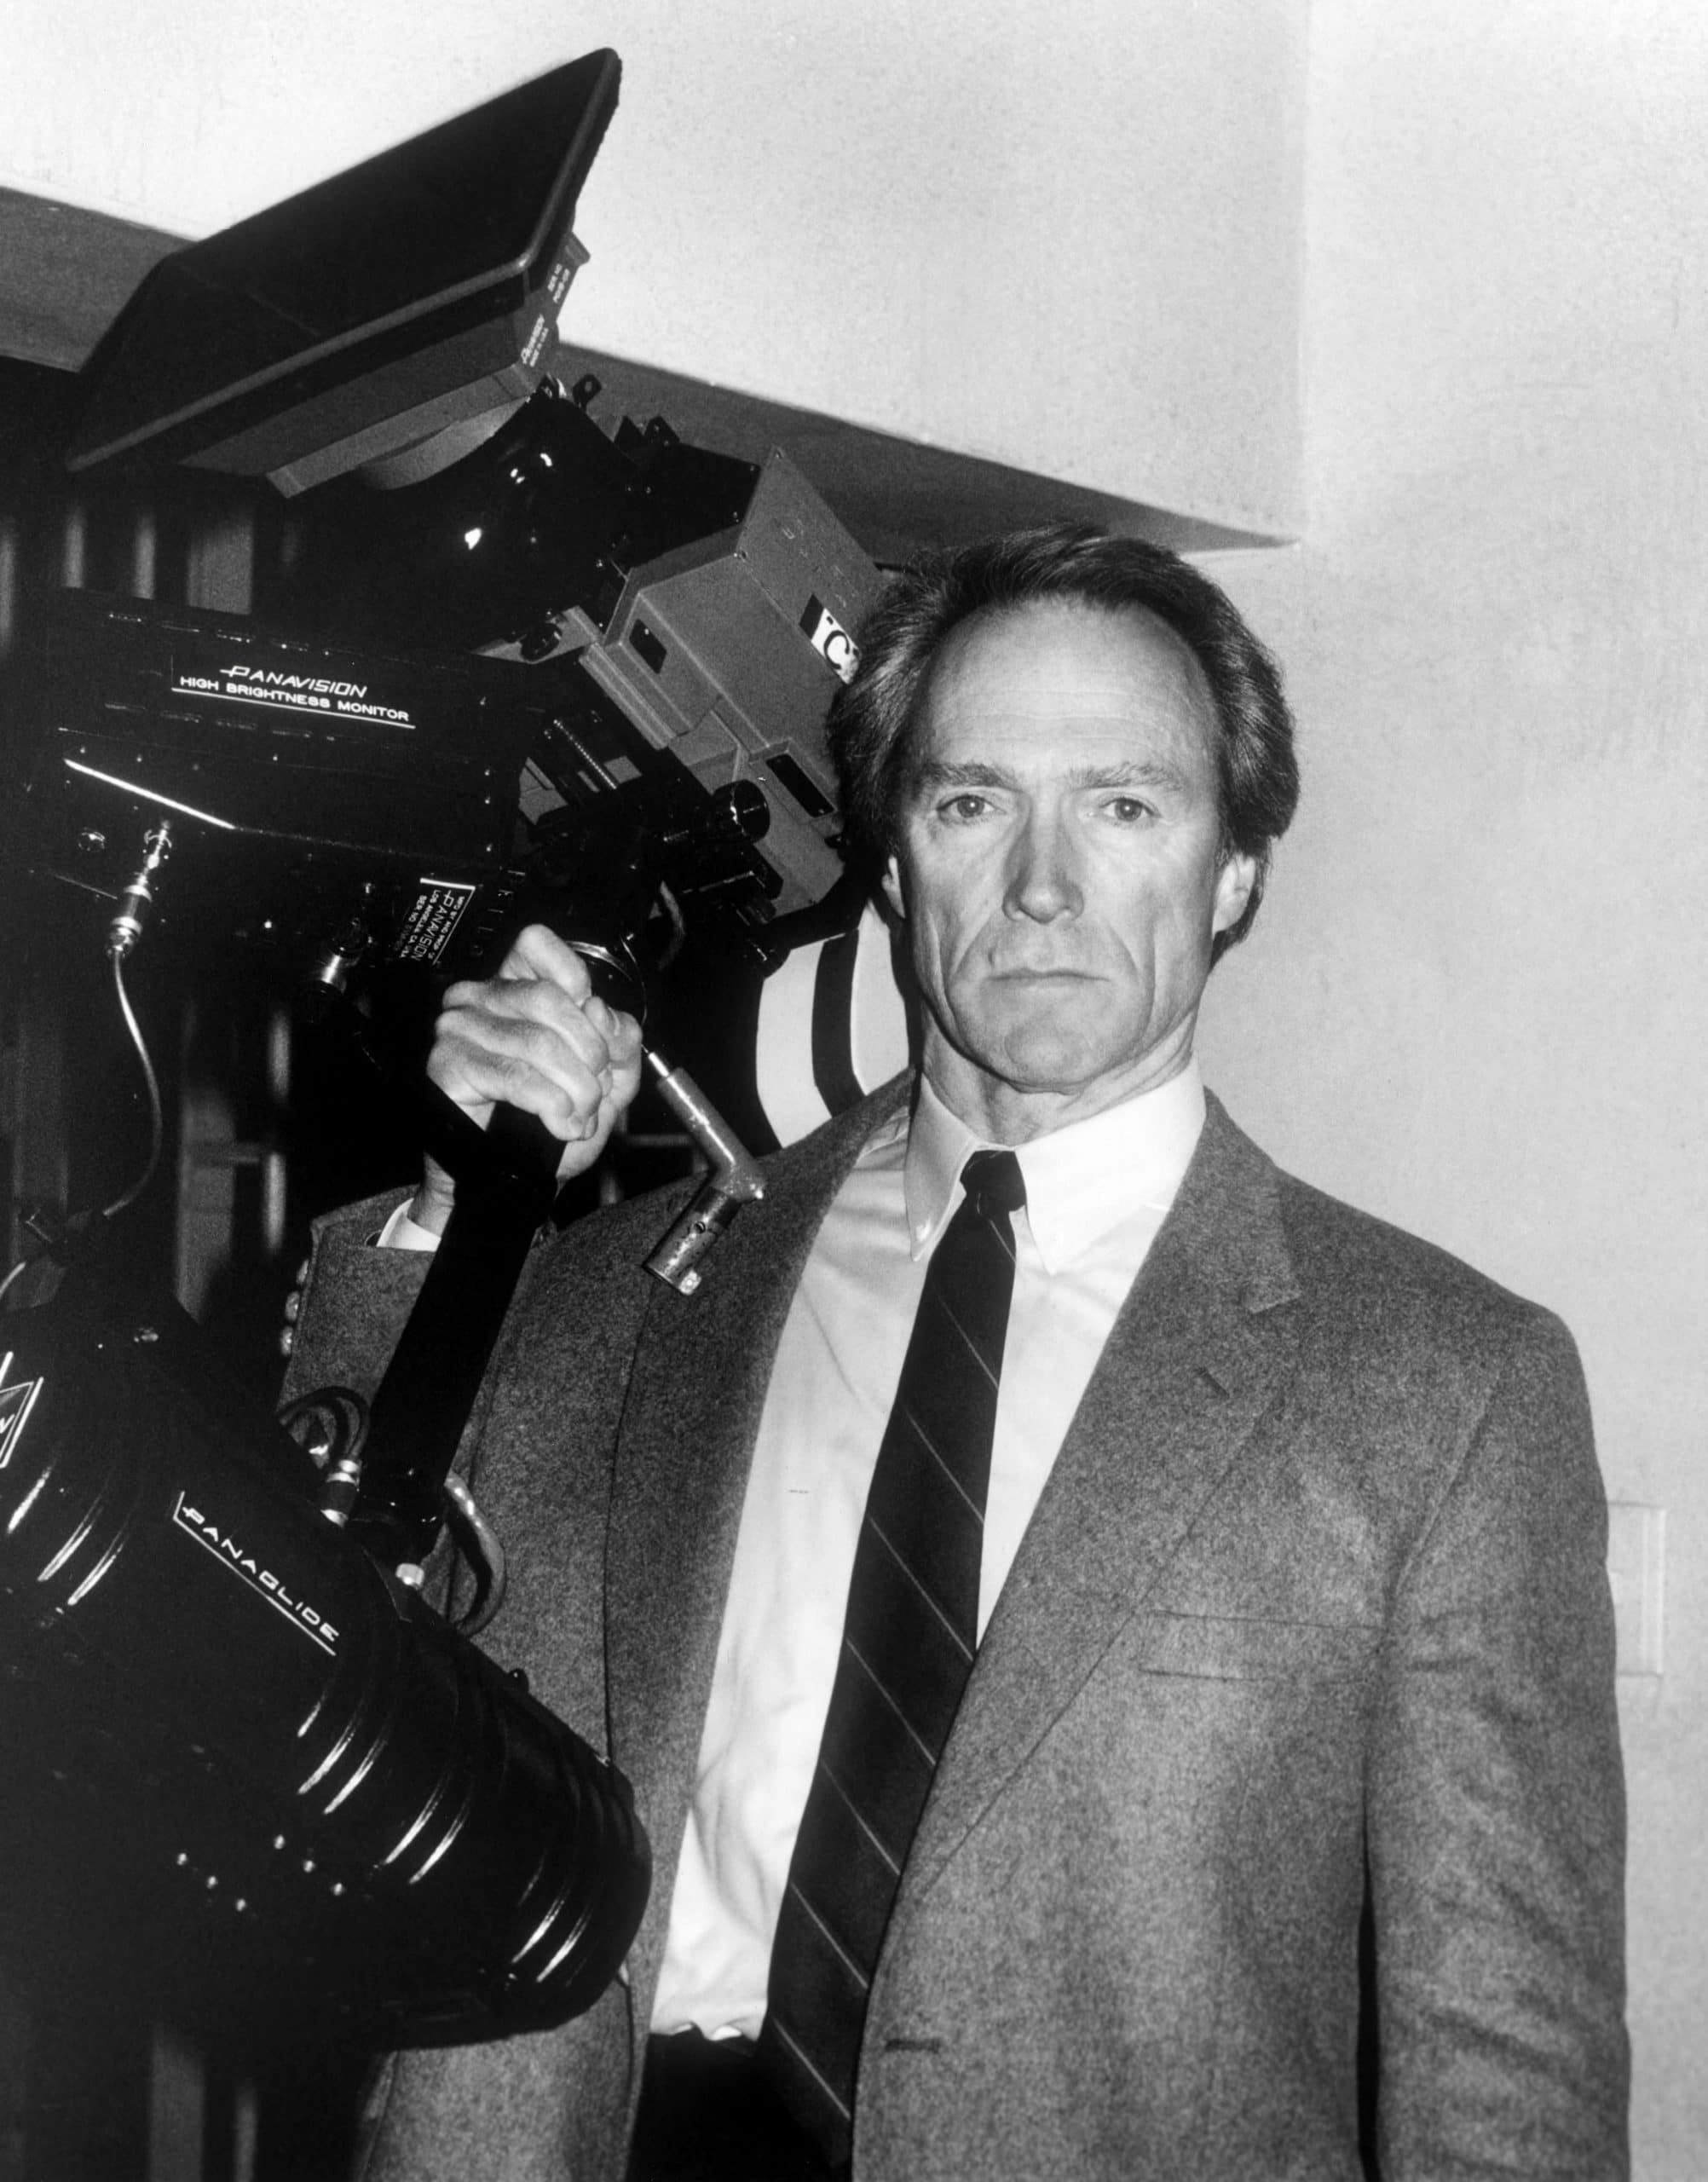 clint eastwood directing the dead pool